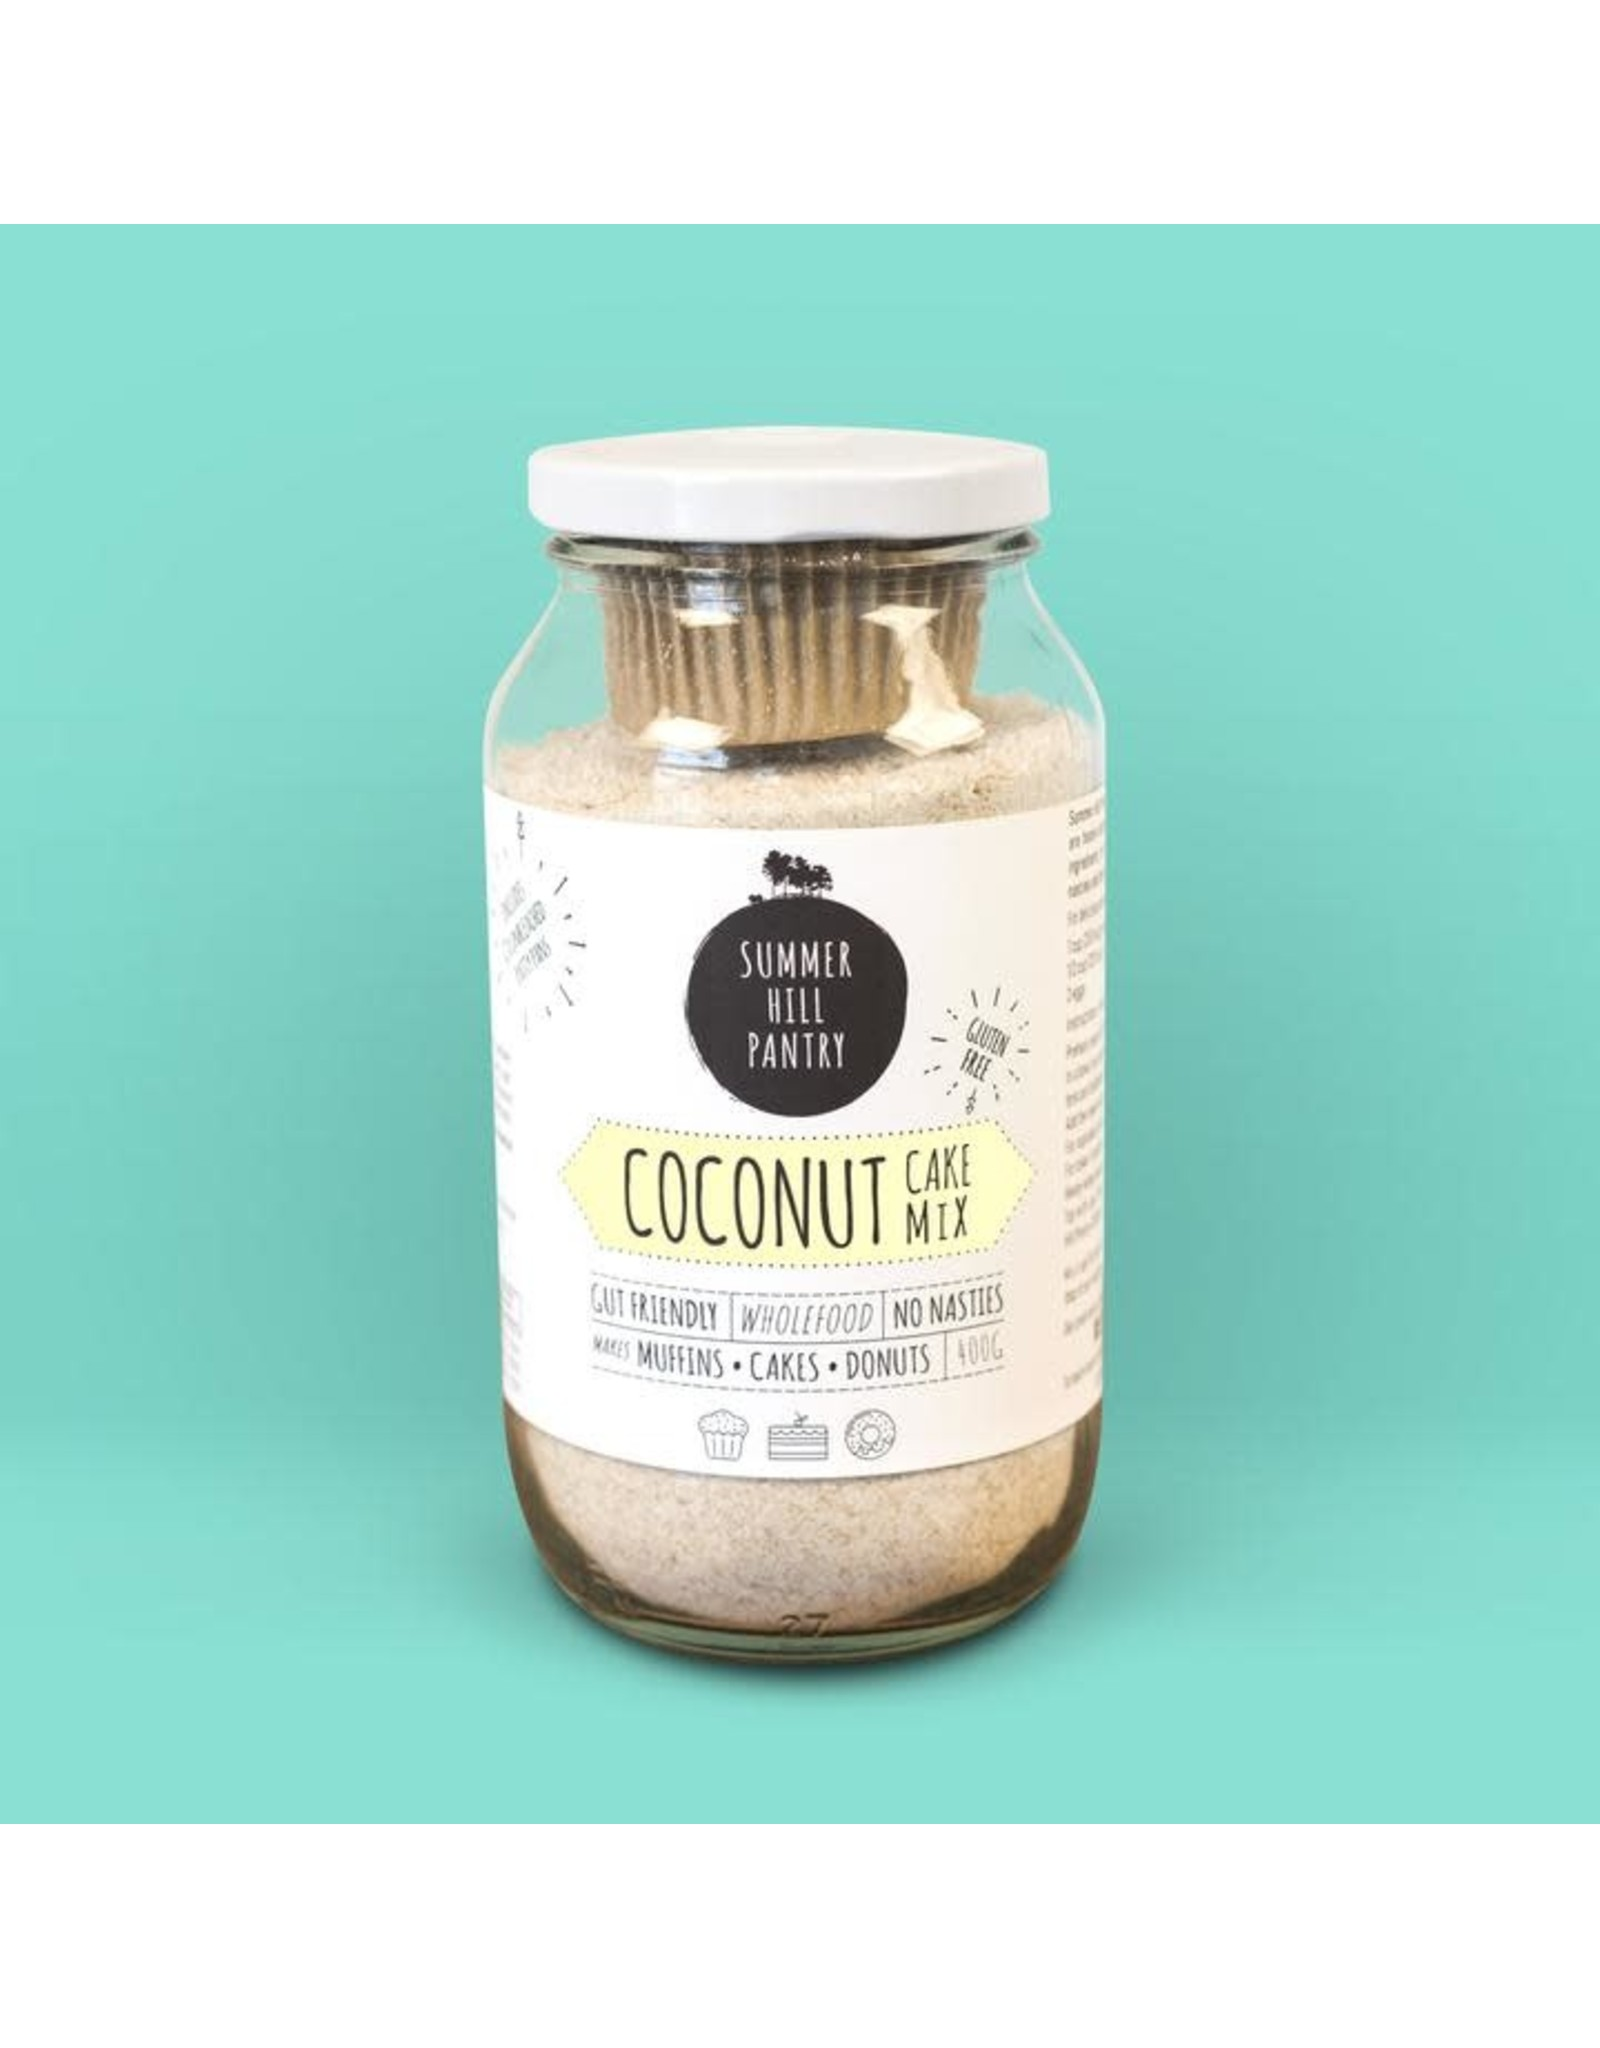 Summerhill Pantry Coconut Cake Mix 400g Jar